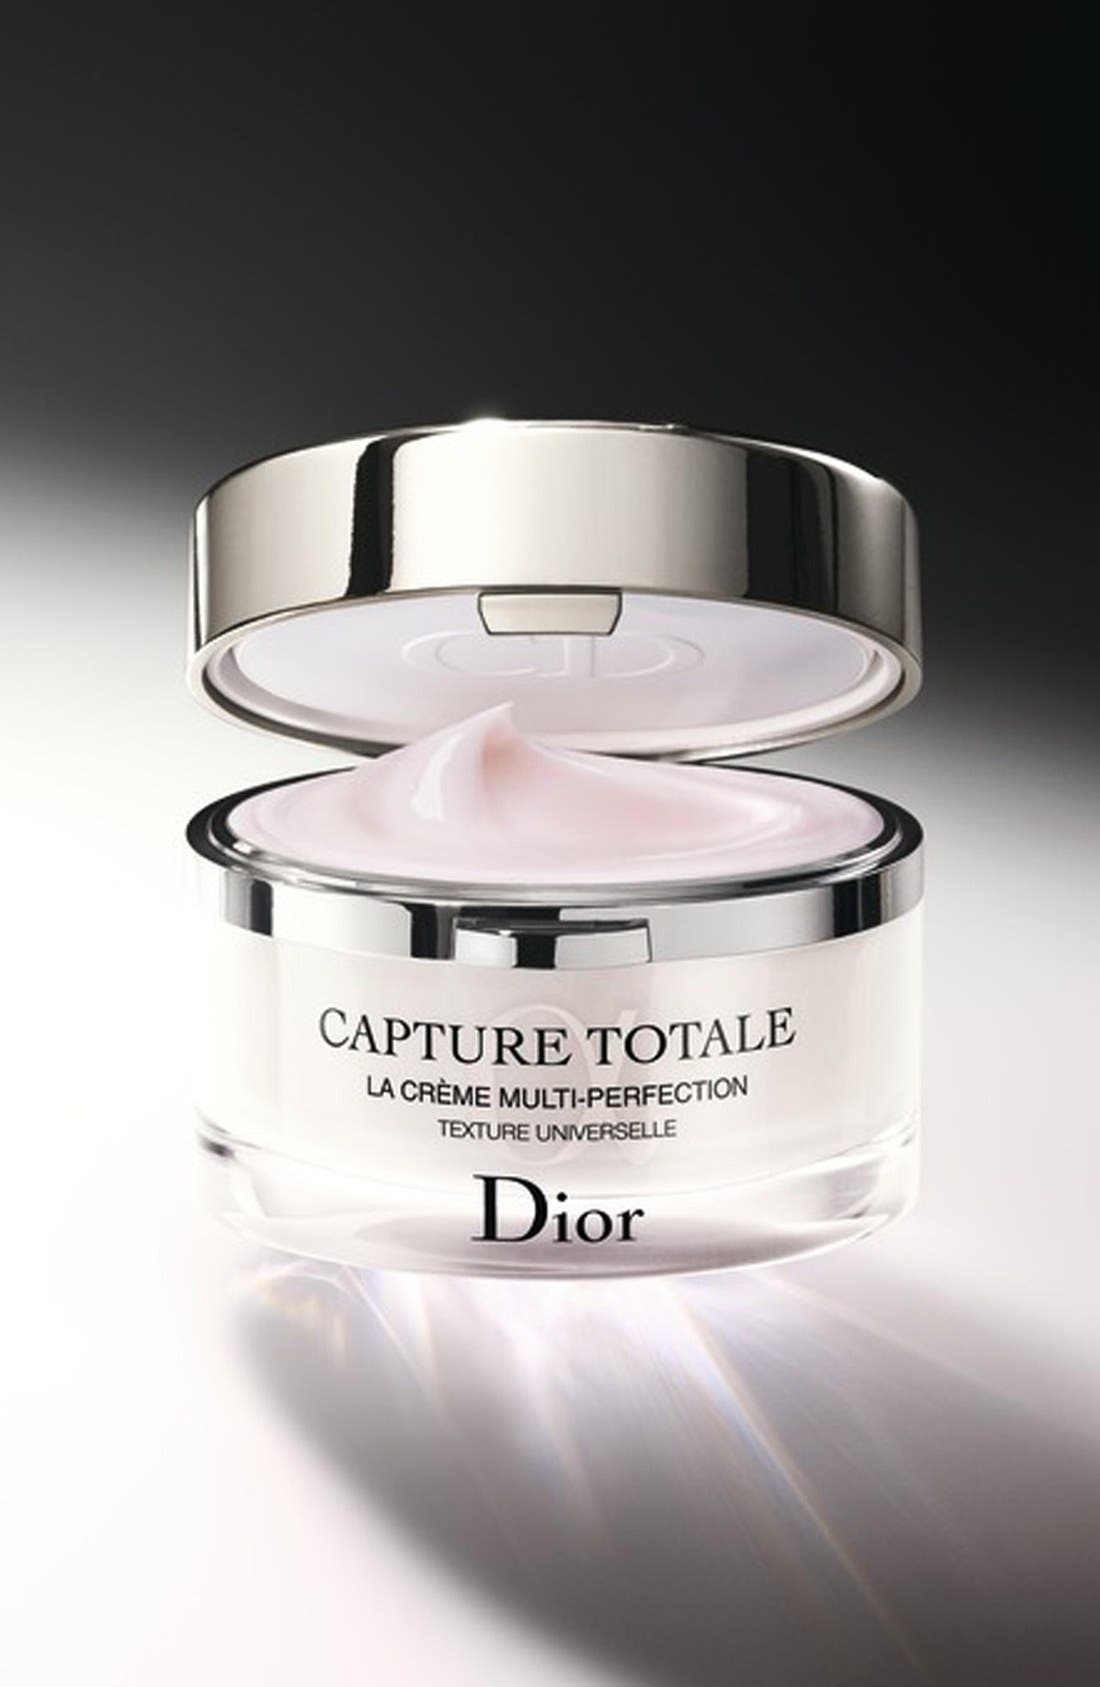 Capture Totale - Light Texture Multi-Perfection Creme,                             Alternate thumbnail 6, color,                             NO COLOR